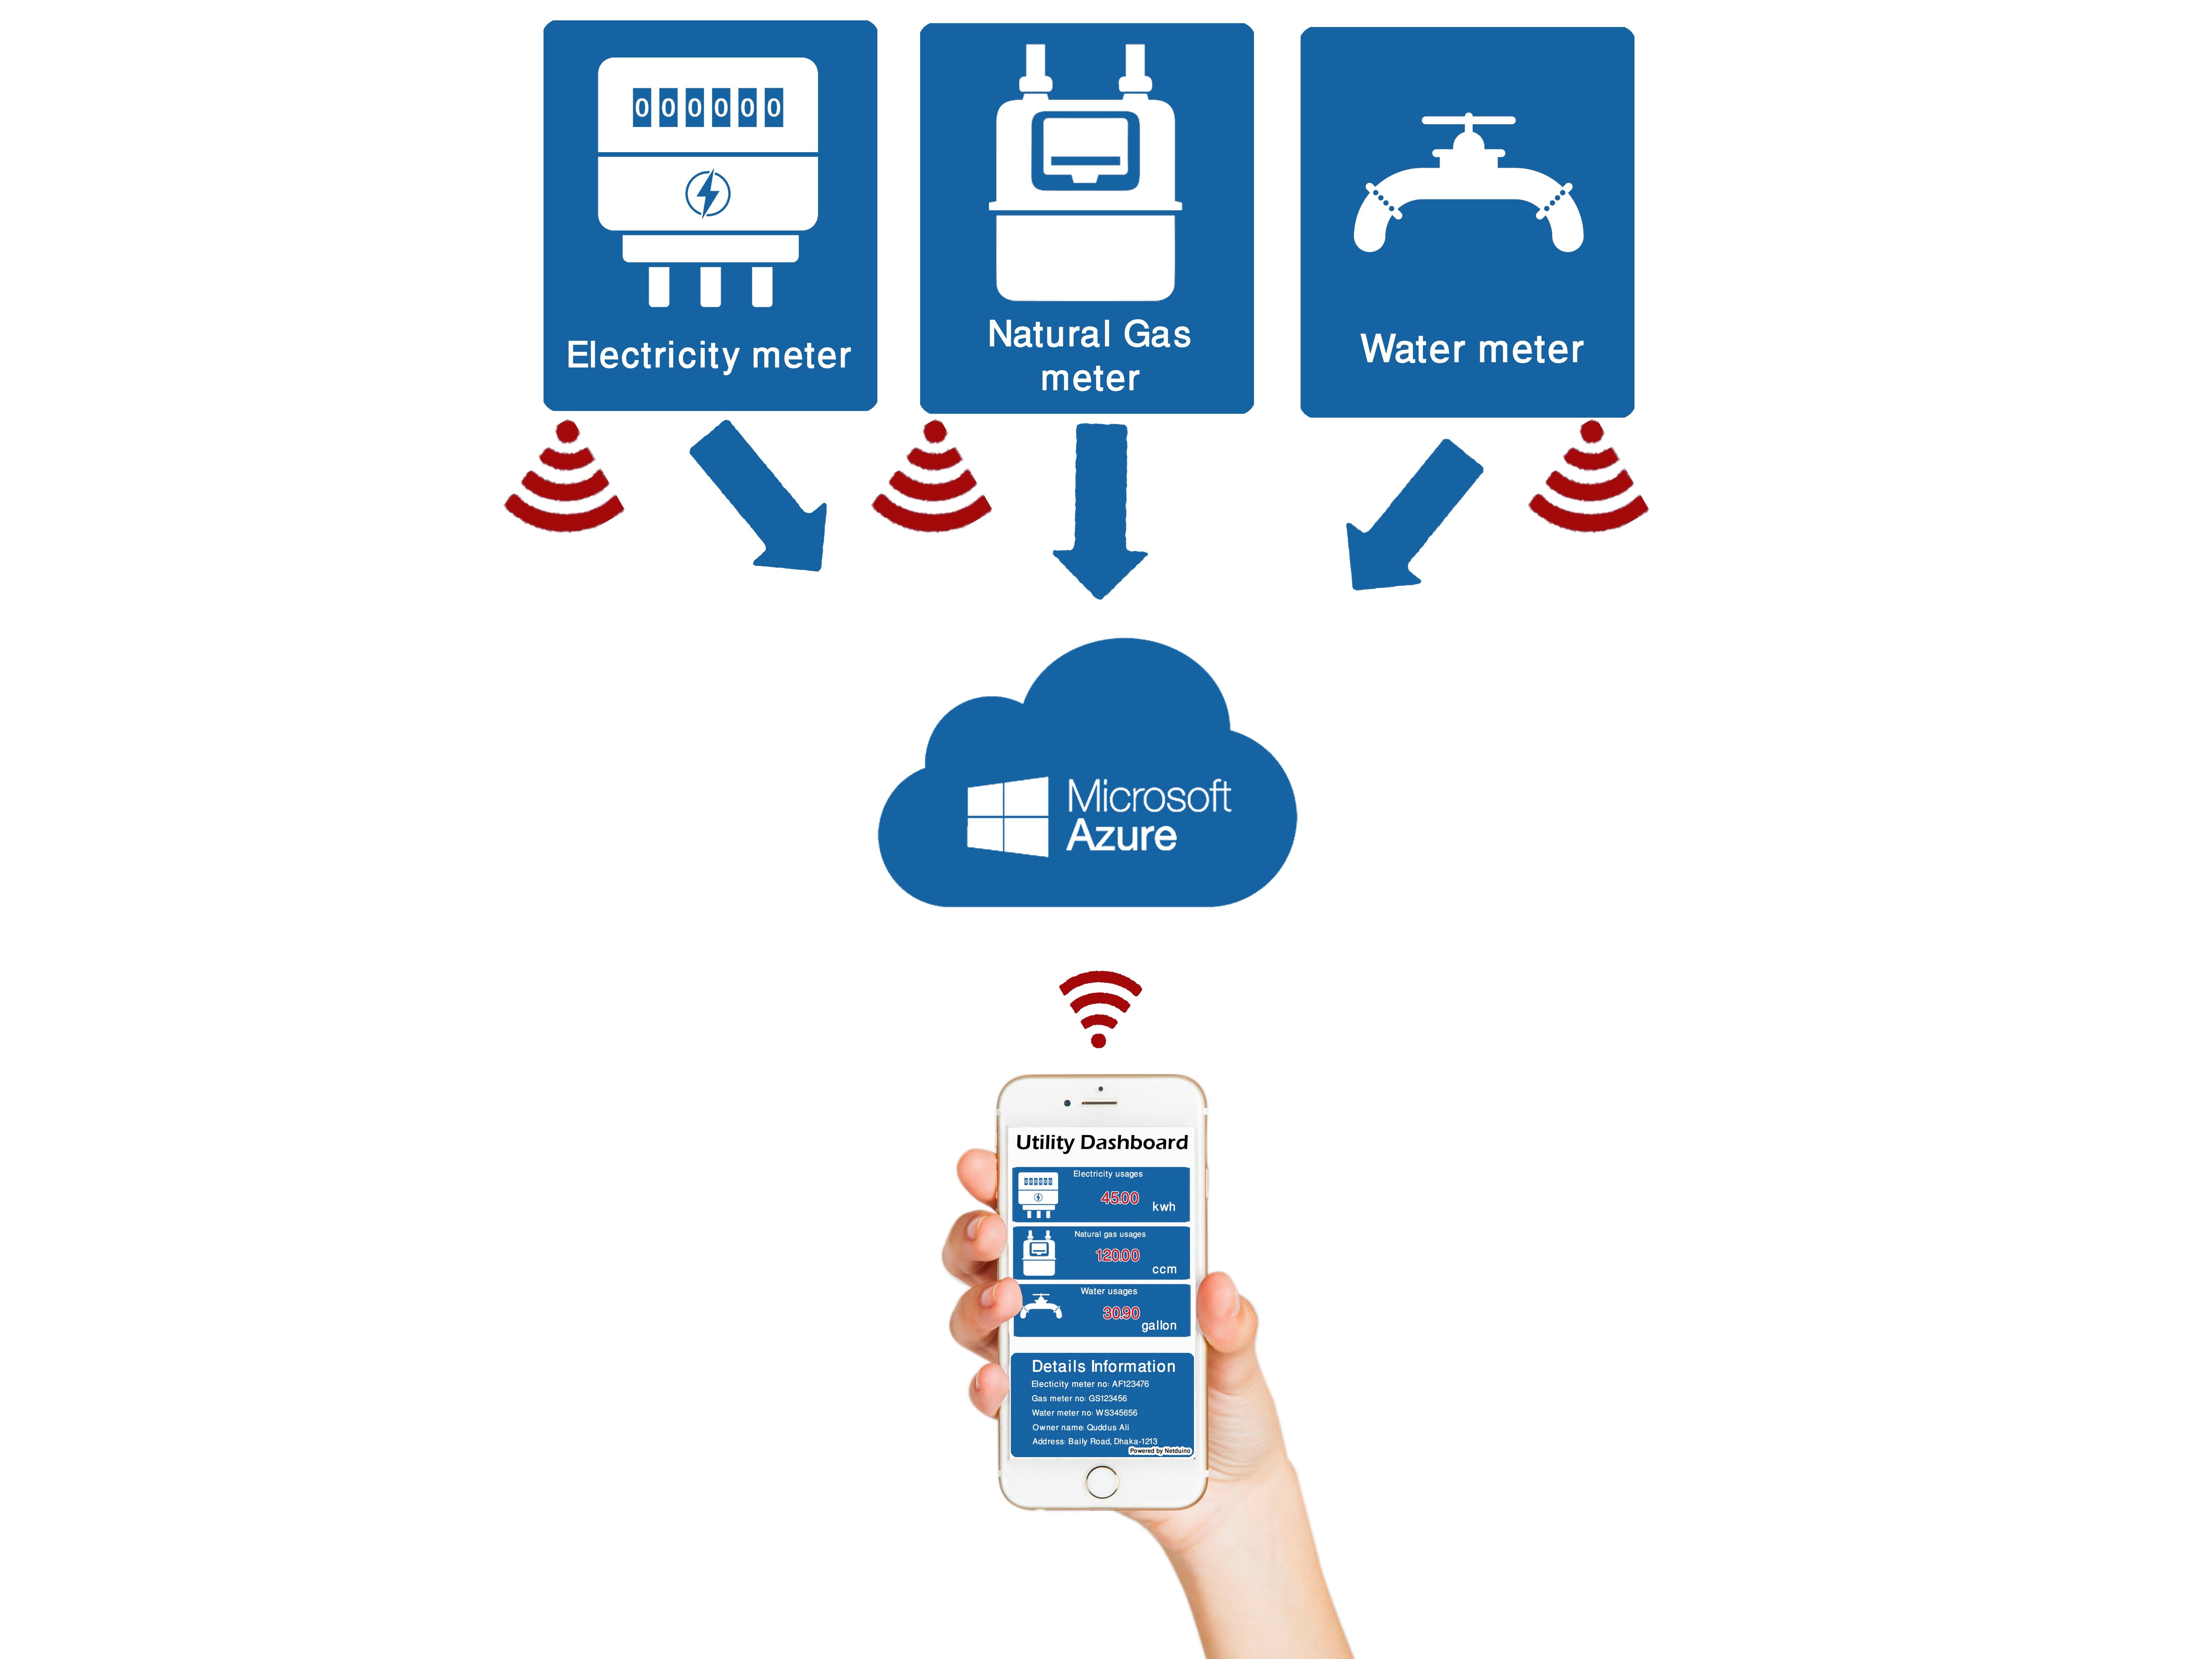 Realtime Utilies usages monitoring system based on IoT